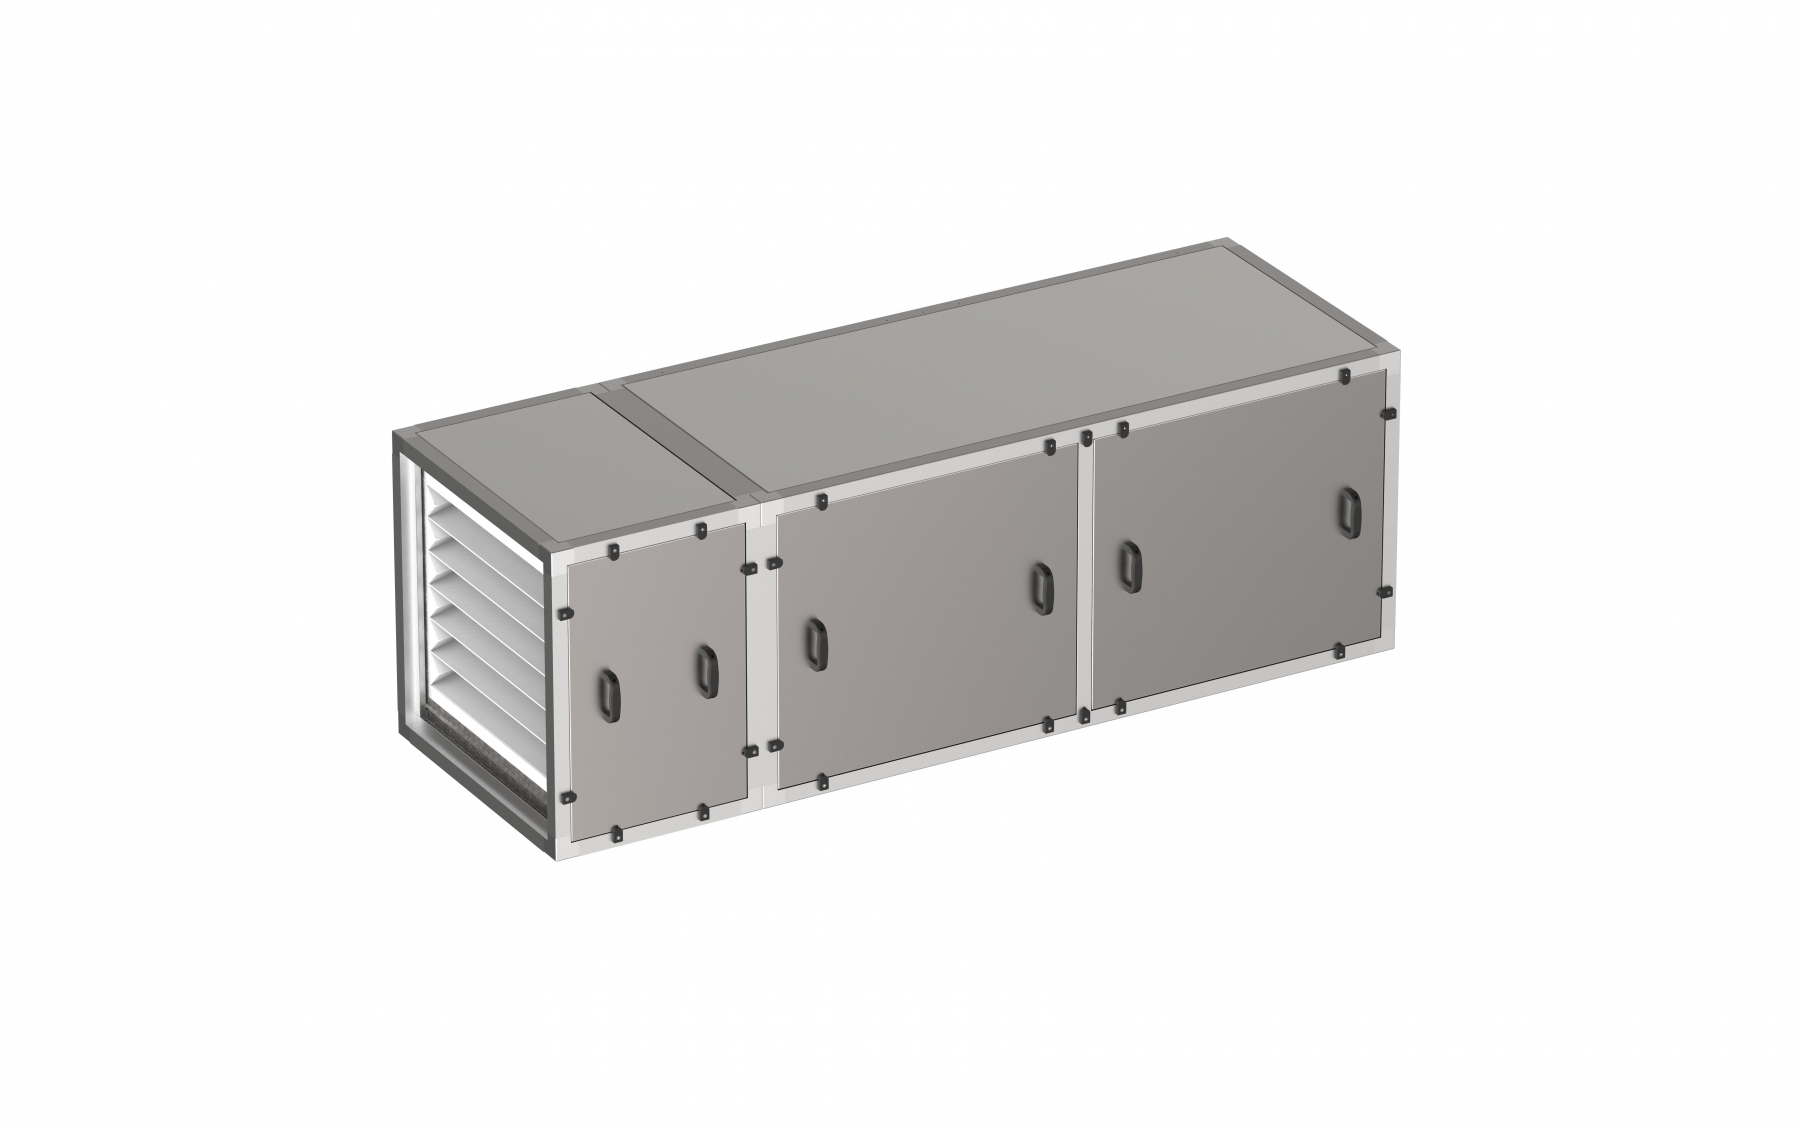 Airlife In-duct solutions